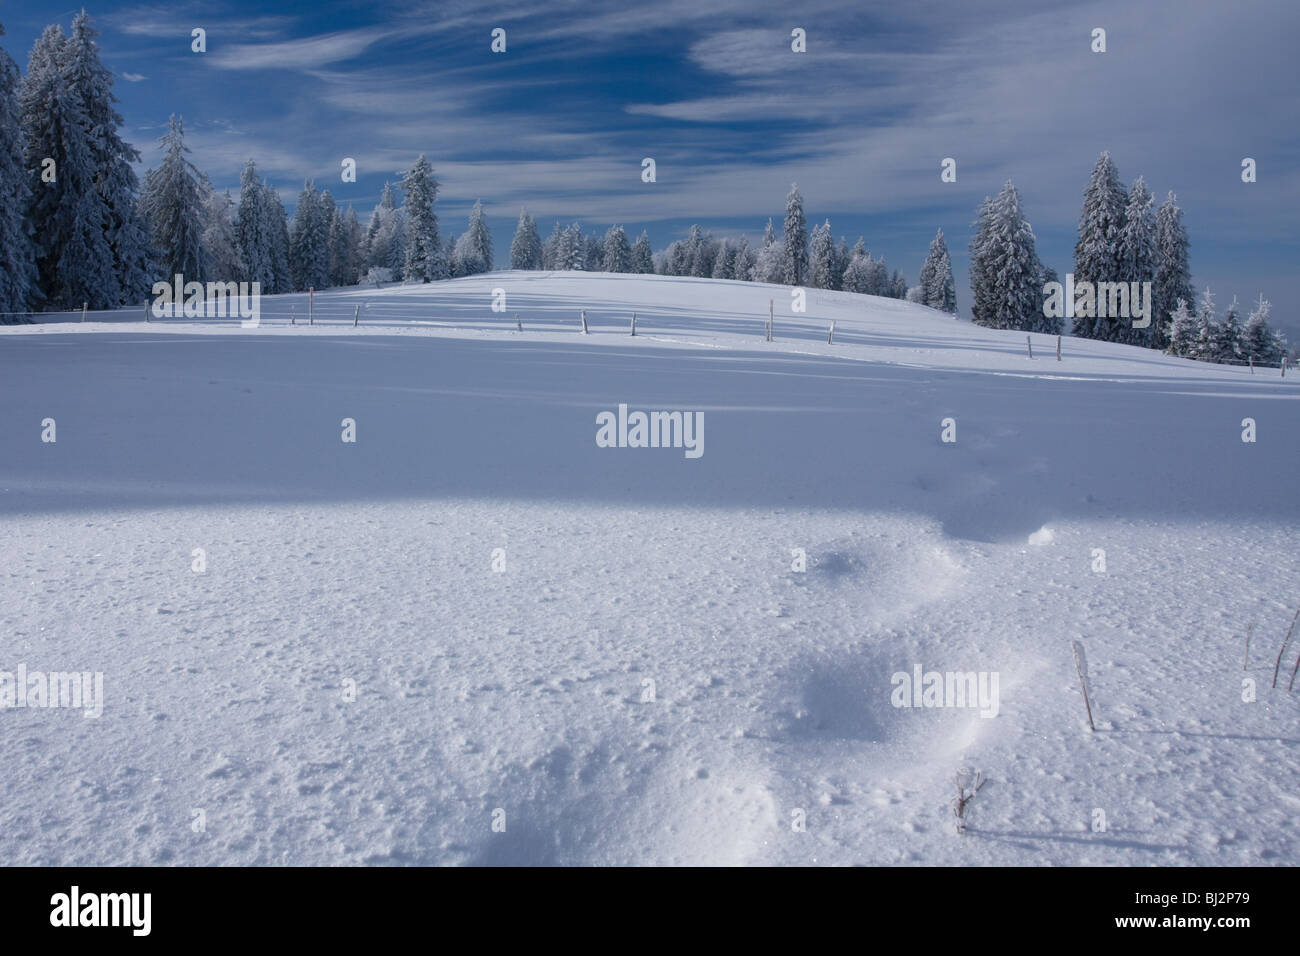 Snow and winter landscape scene with a beautiful sky and some pins trees in La Chaux-de-Fonds in Switzerland. - Stock Image